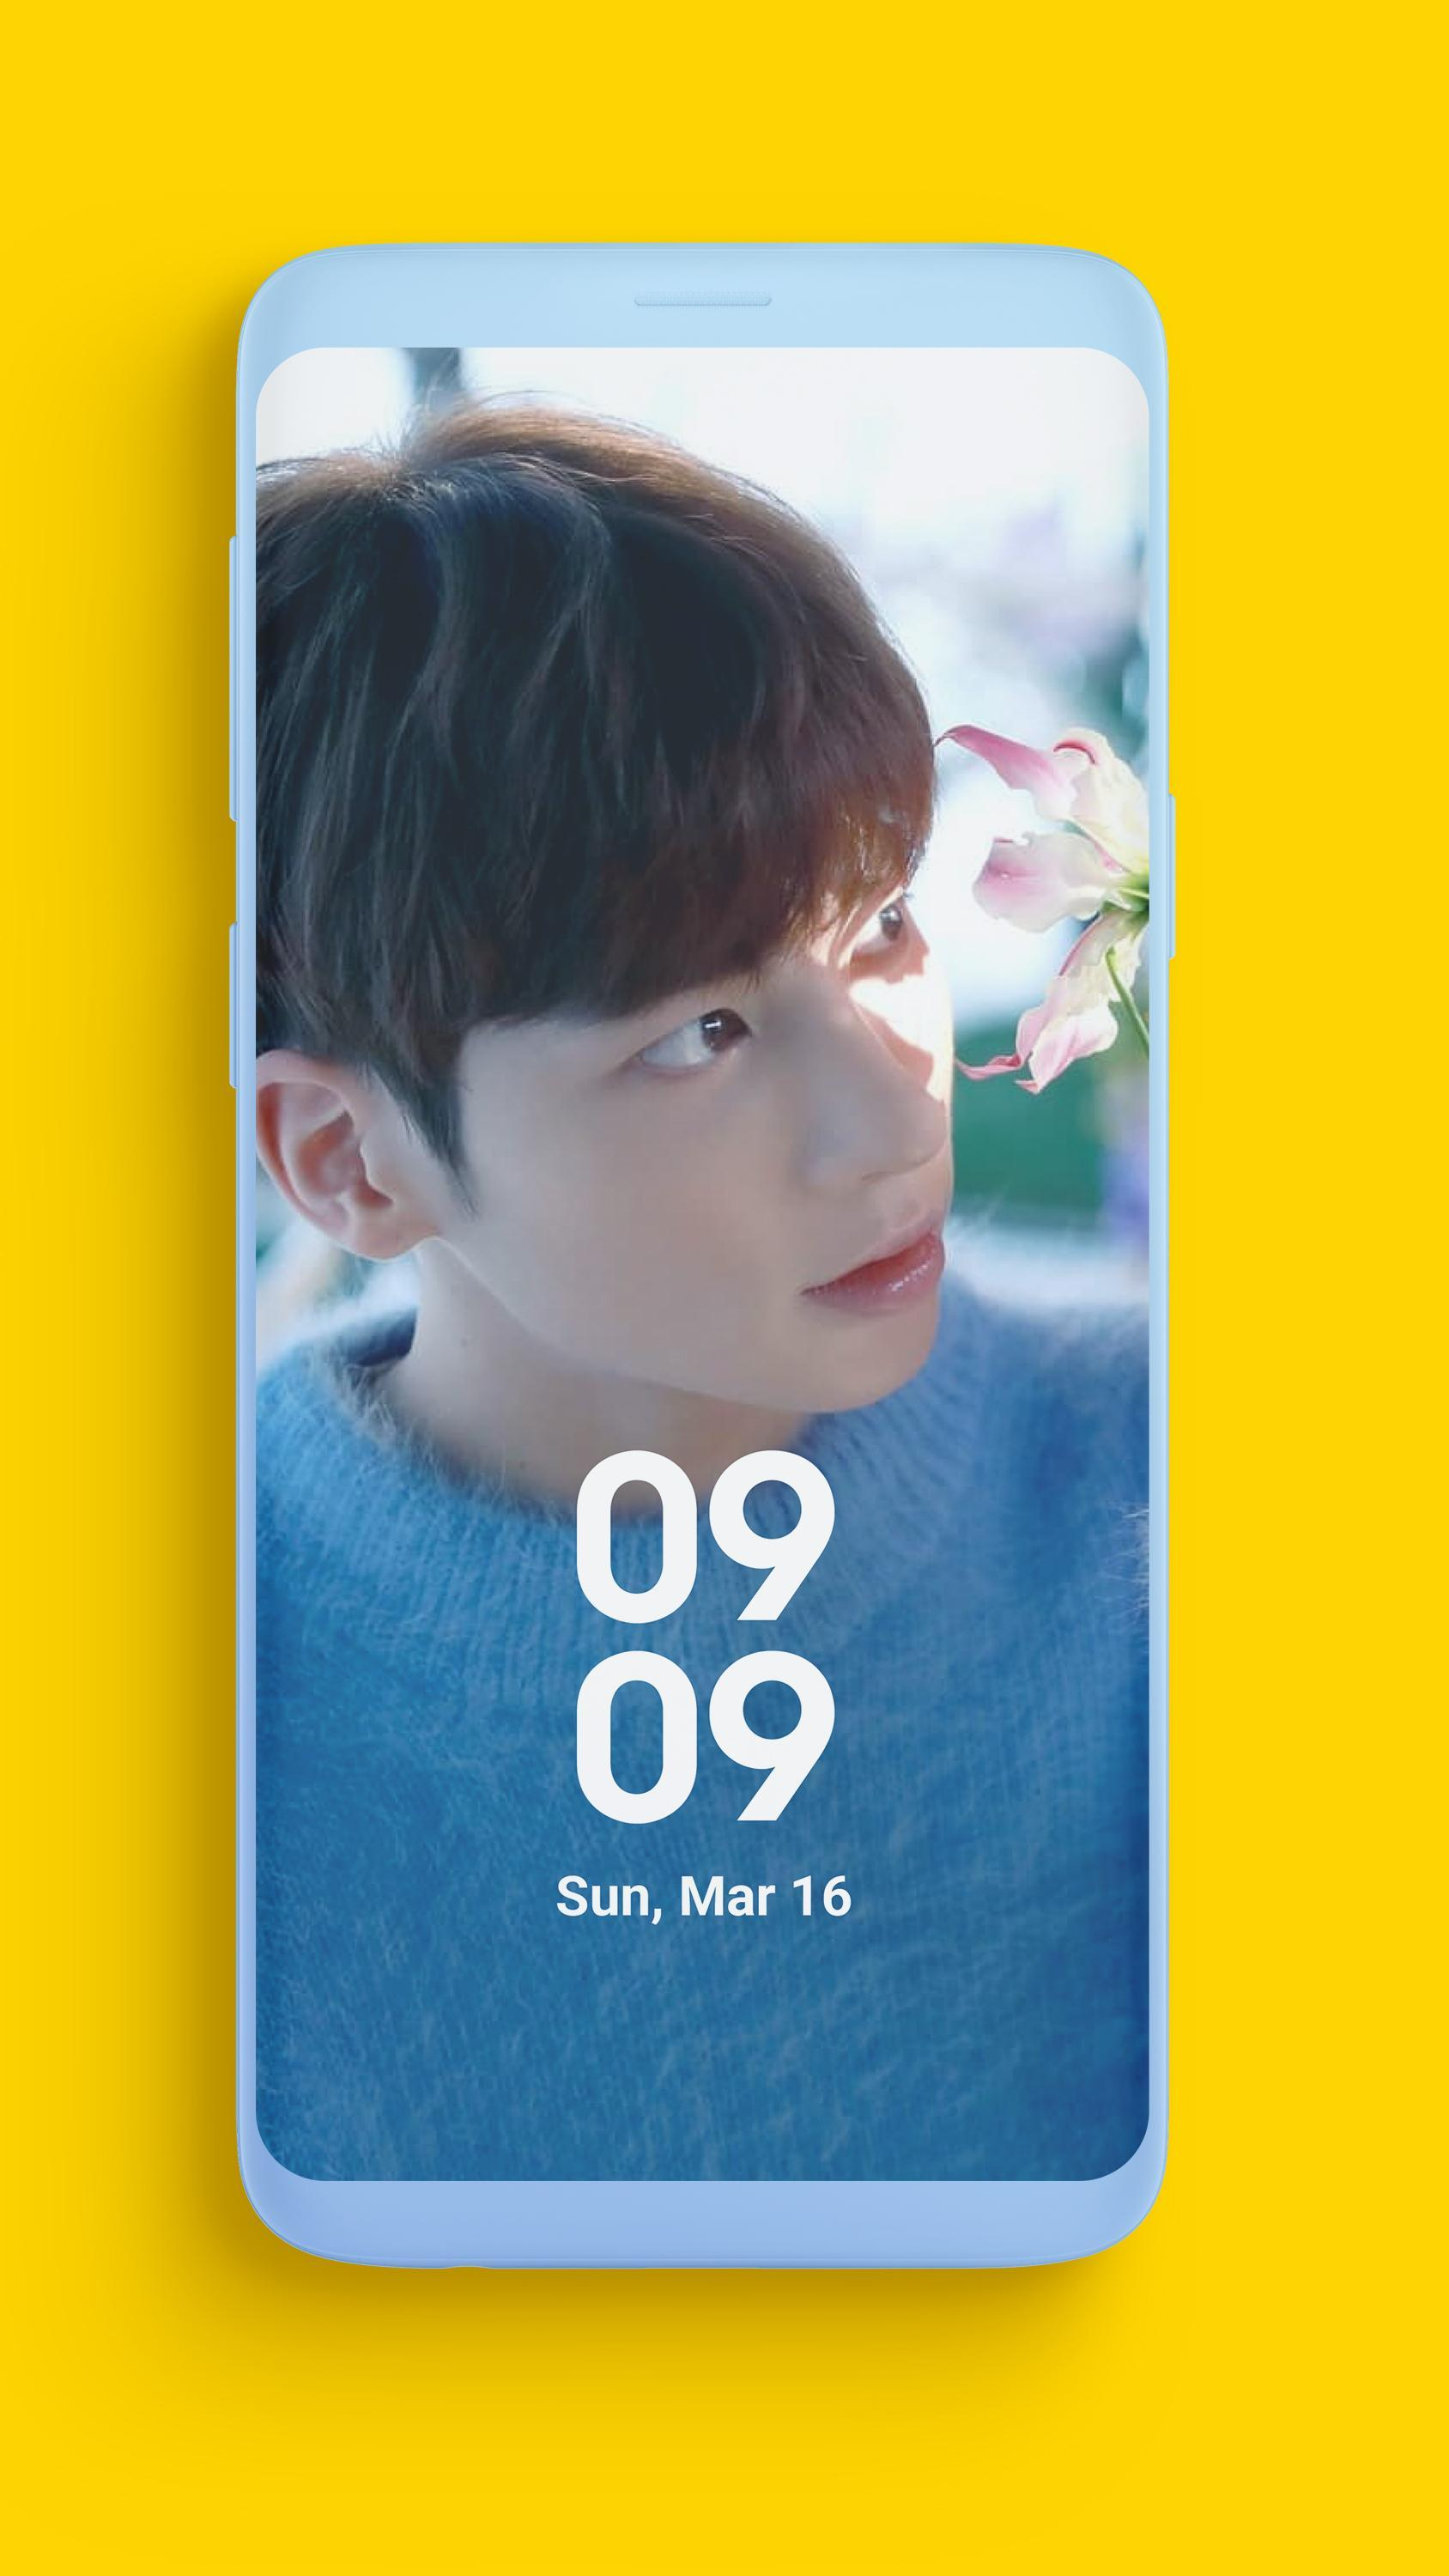 TXT - Best wallpaper 2019 2K HD Full HD for Android - APK